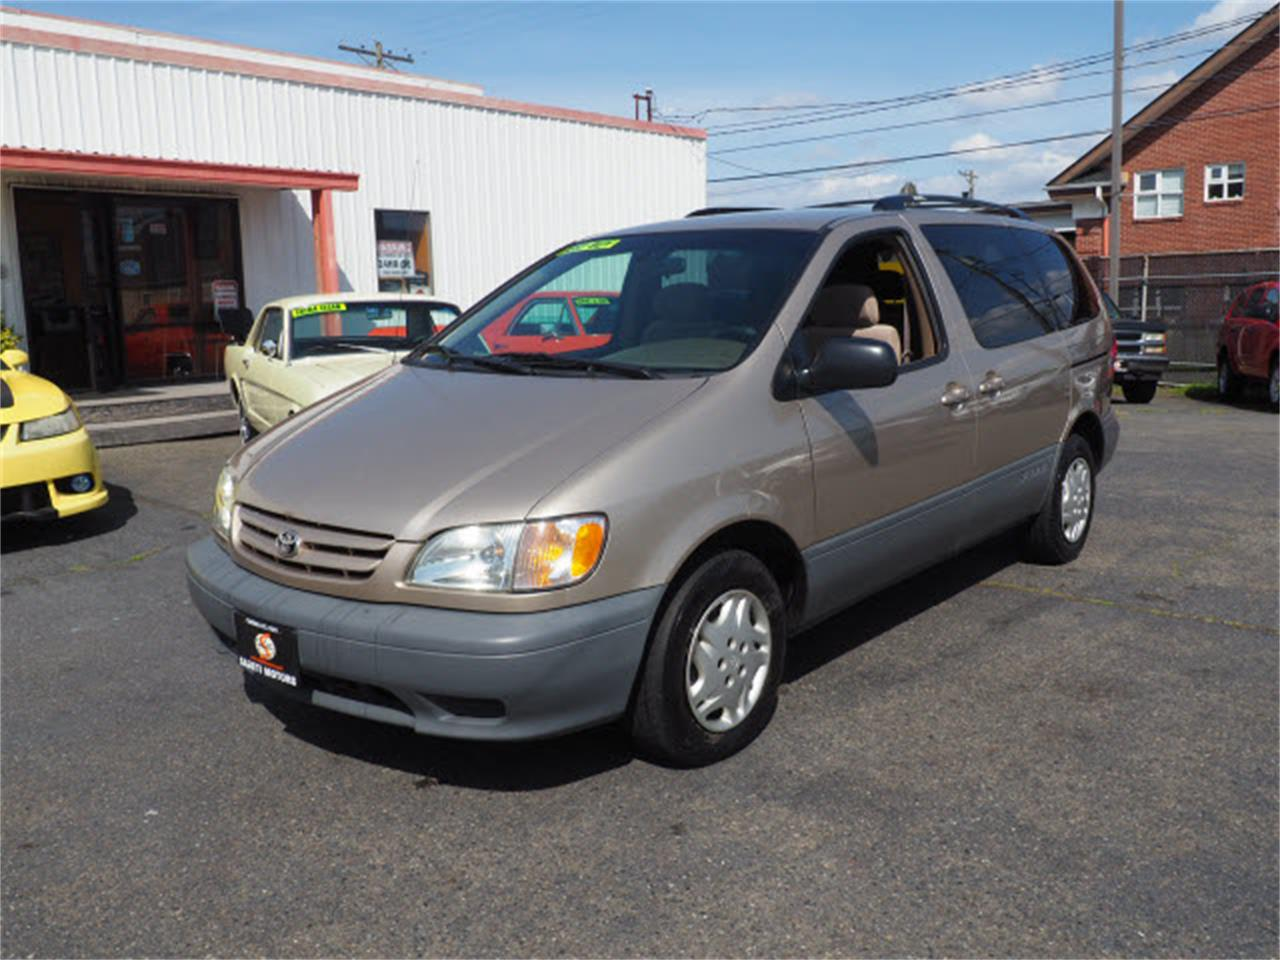 2003 toyota sienna for sale classiccars com cc 1211511 2003 toyota sienna for sale